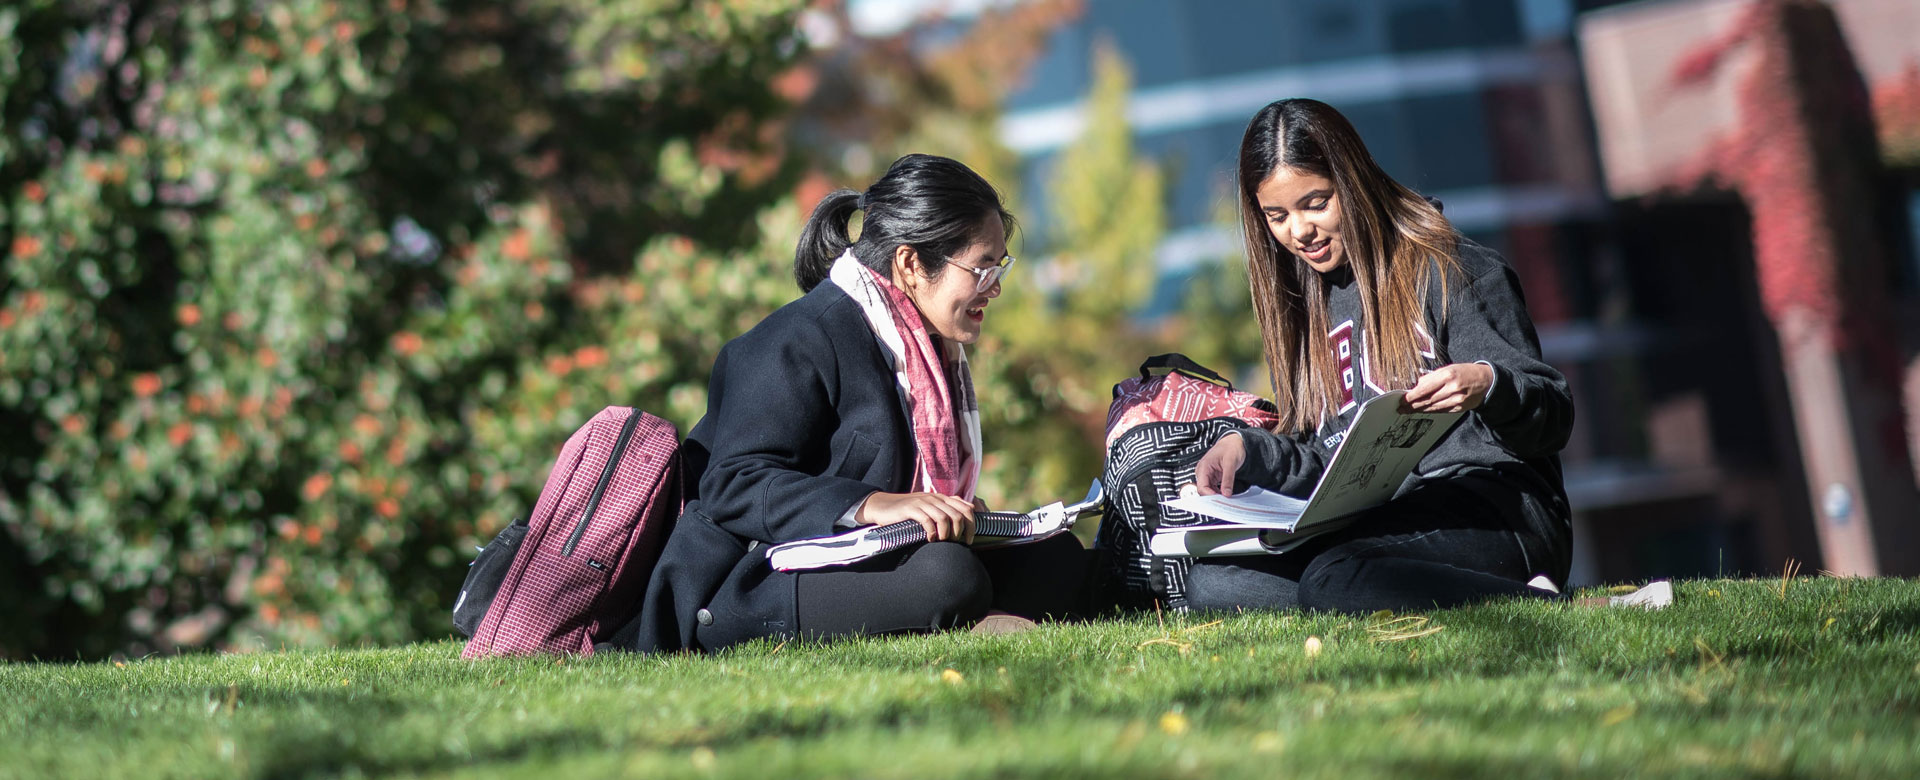 Two female students studying in the courtyard